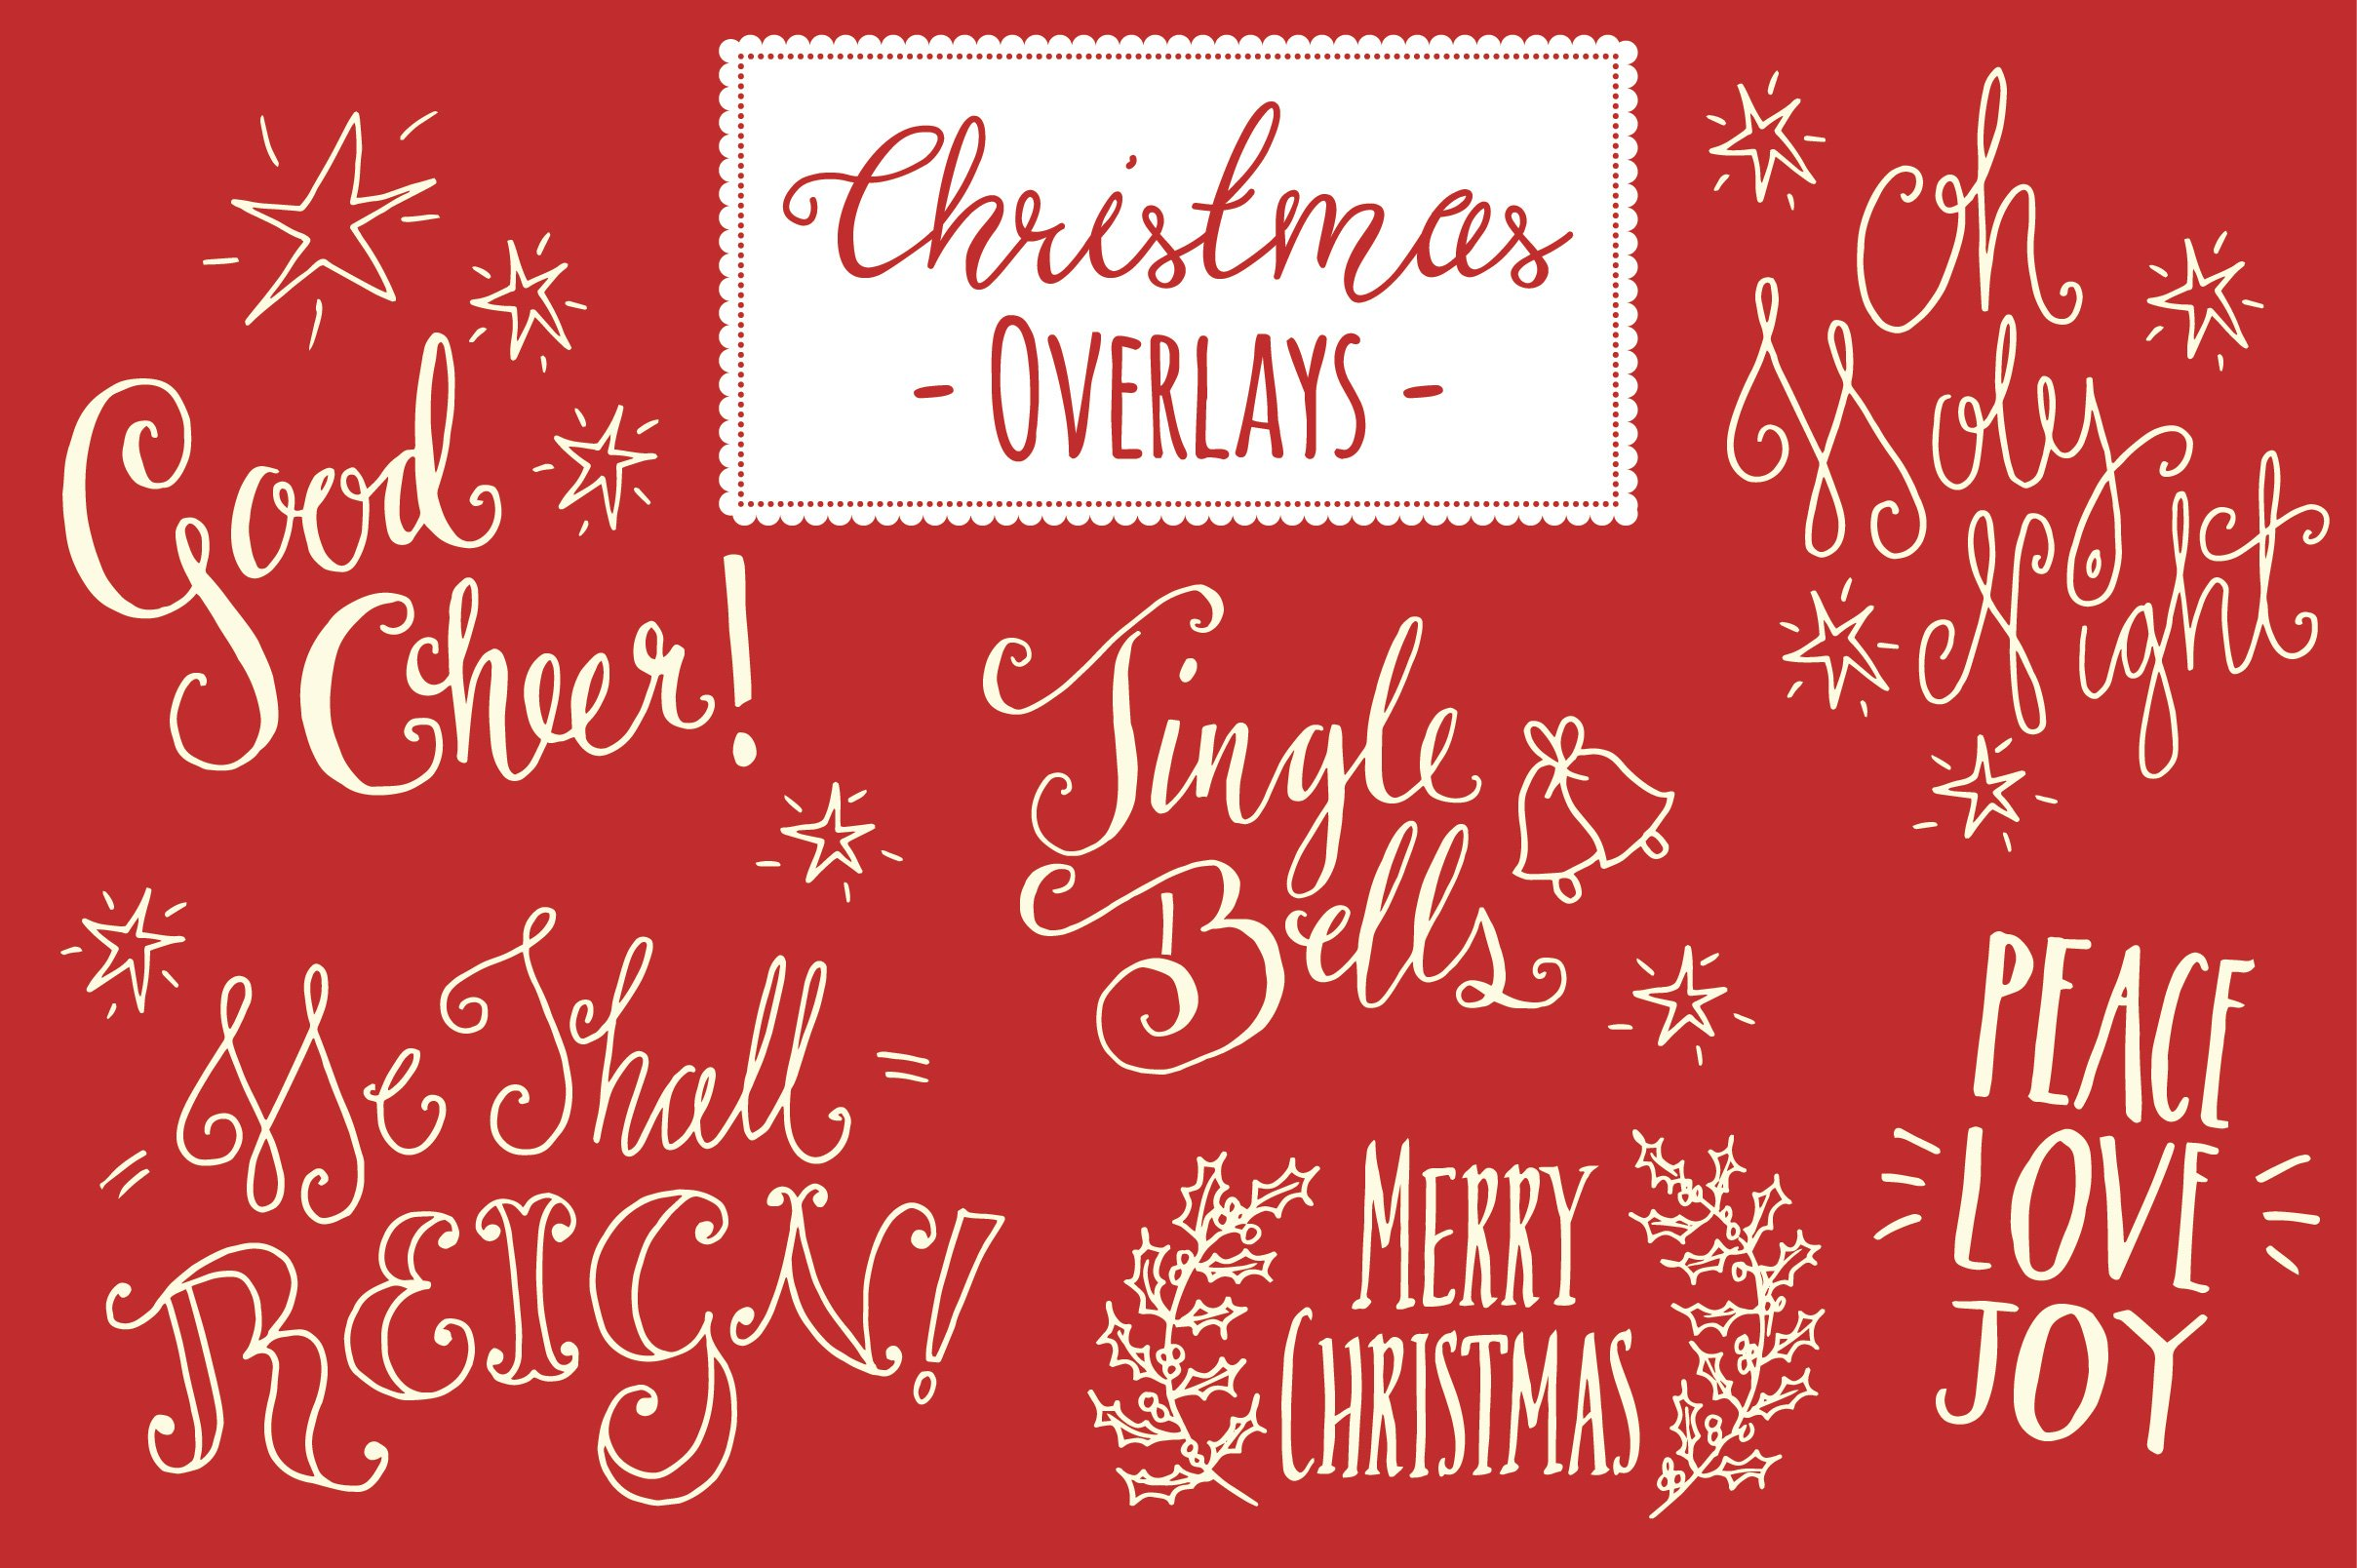 christmas overlays set 5 vector graphics creative market - Christmas Overlays